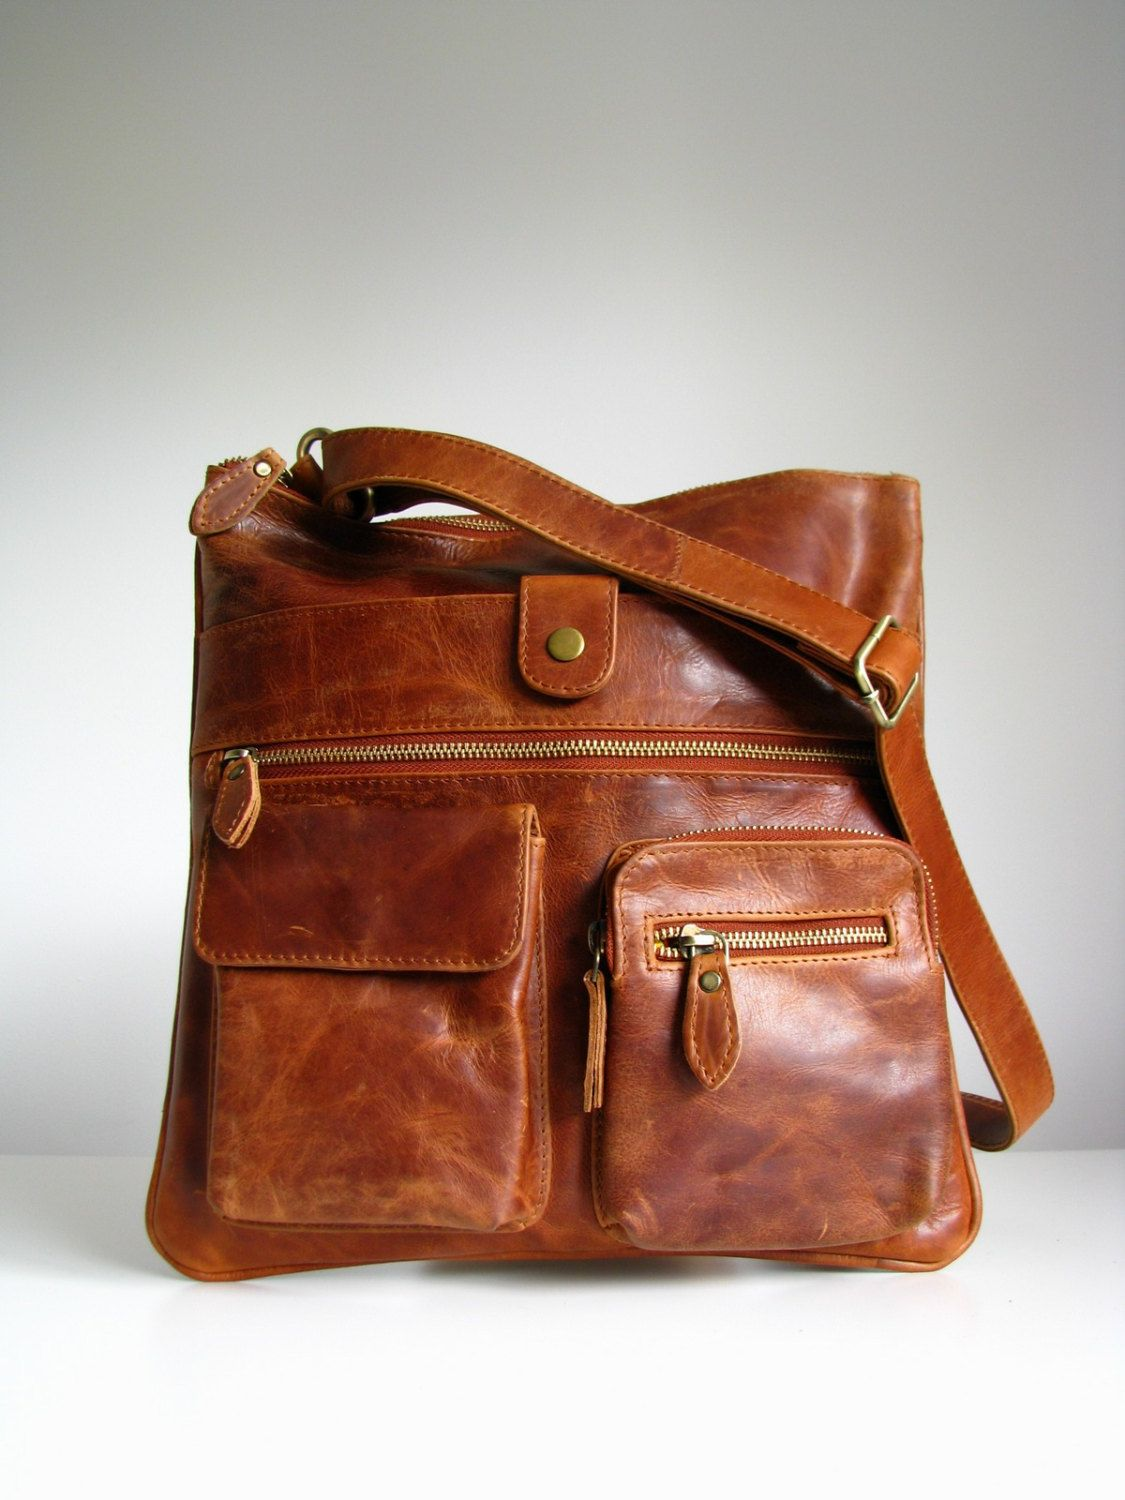 Leather Handbag Messenger Bag Brown Vintage Look 120 00 Via Etsy